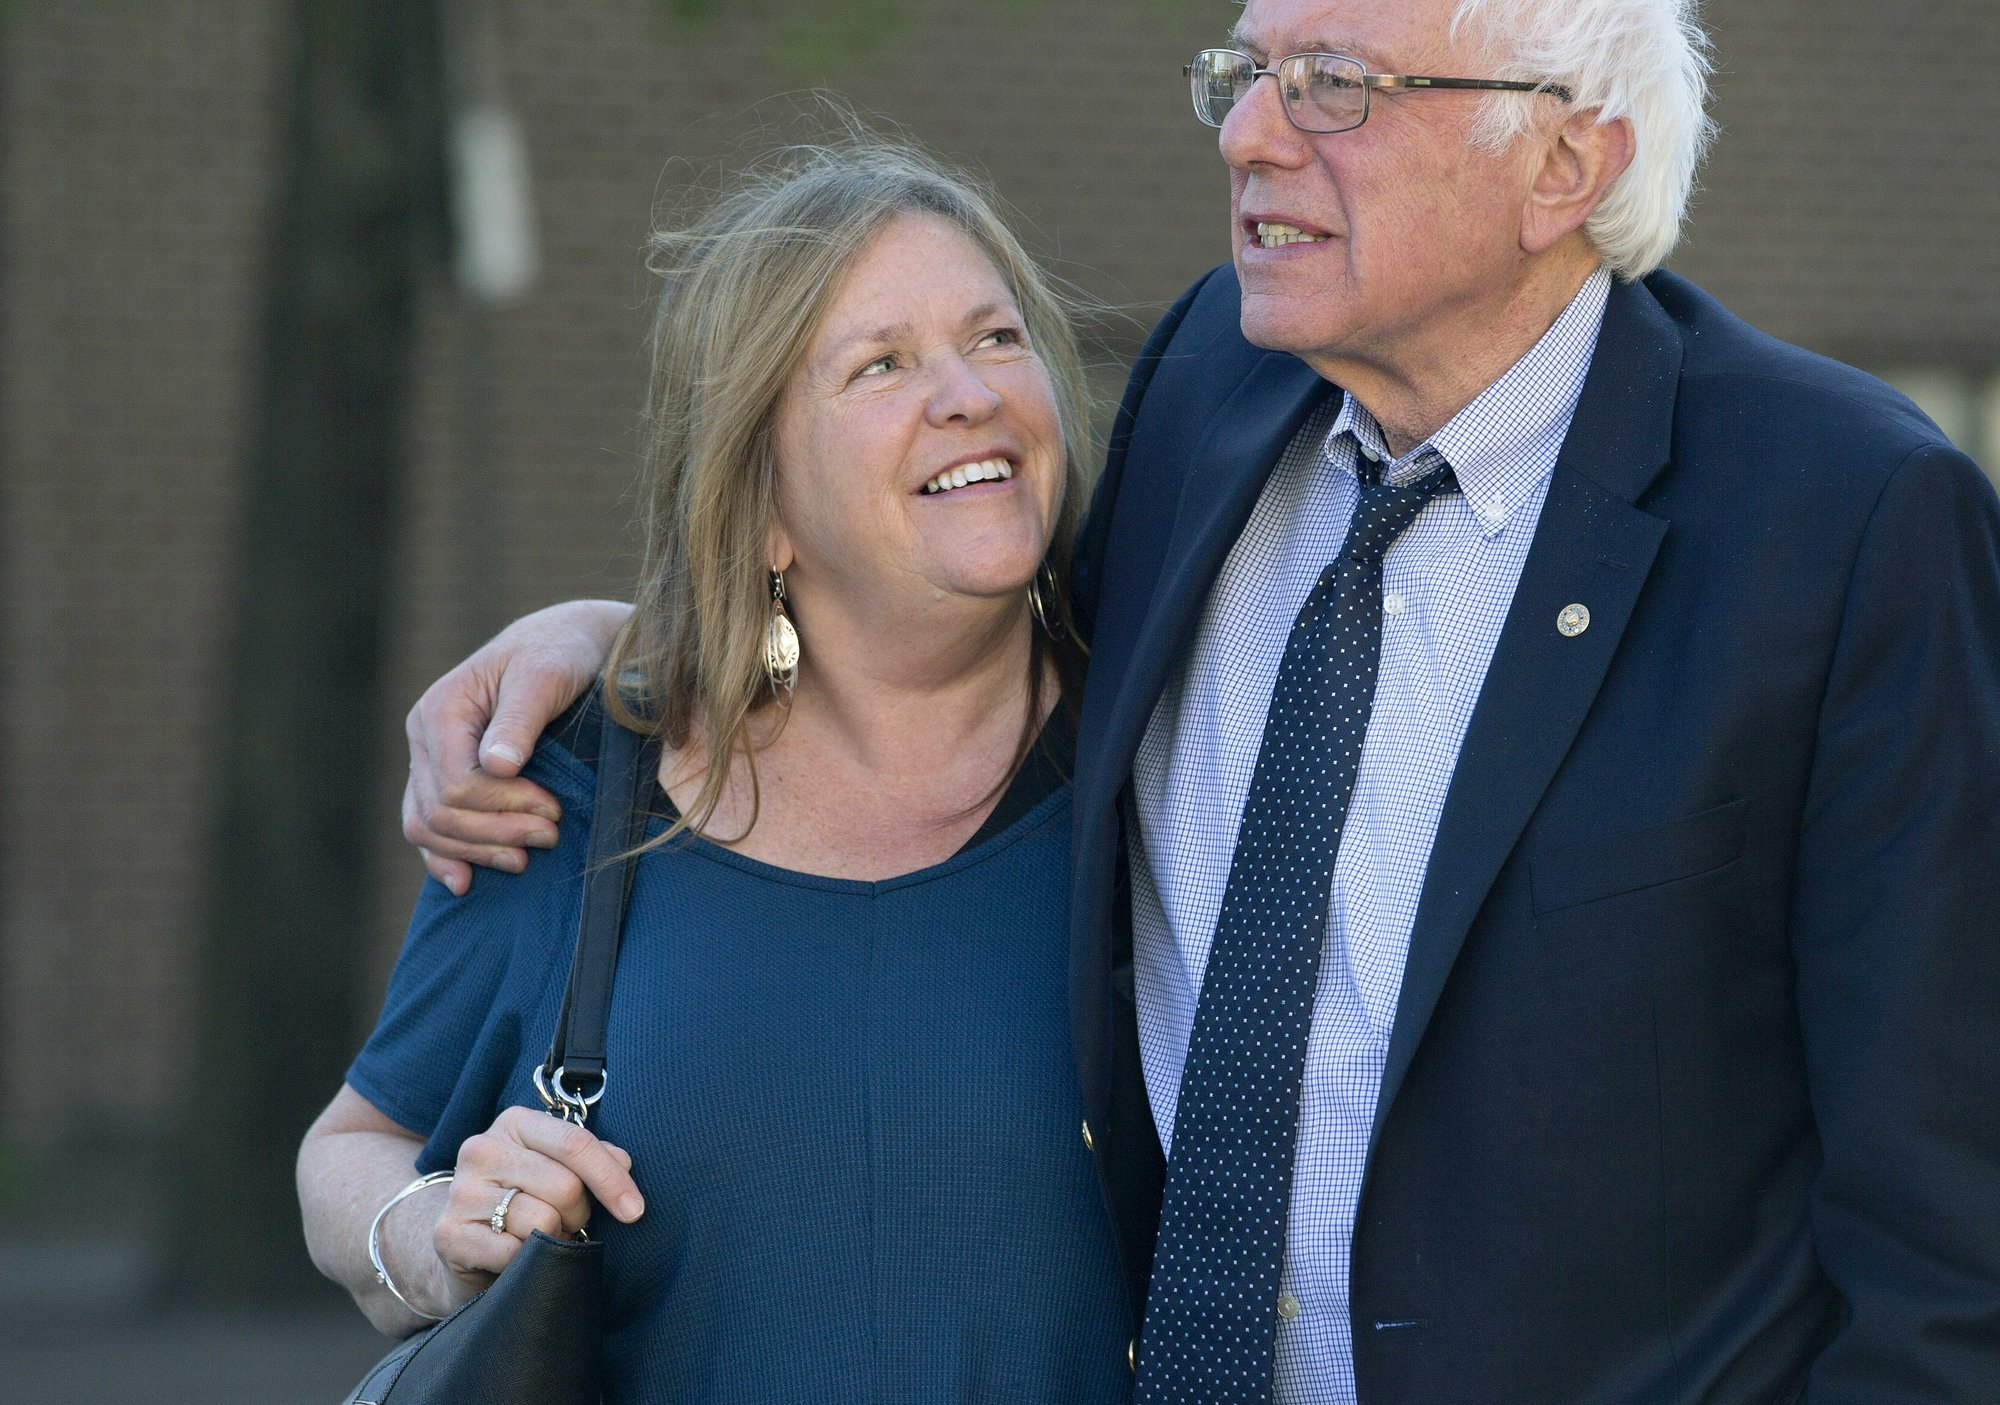 Institute founded by Sanders' wife, son is shutting down